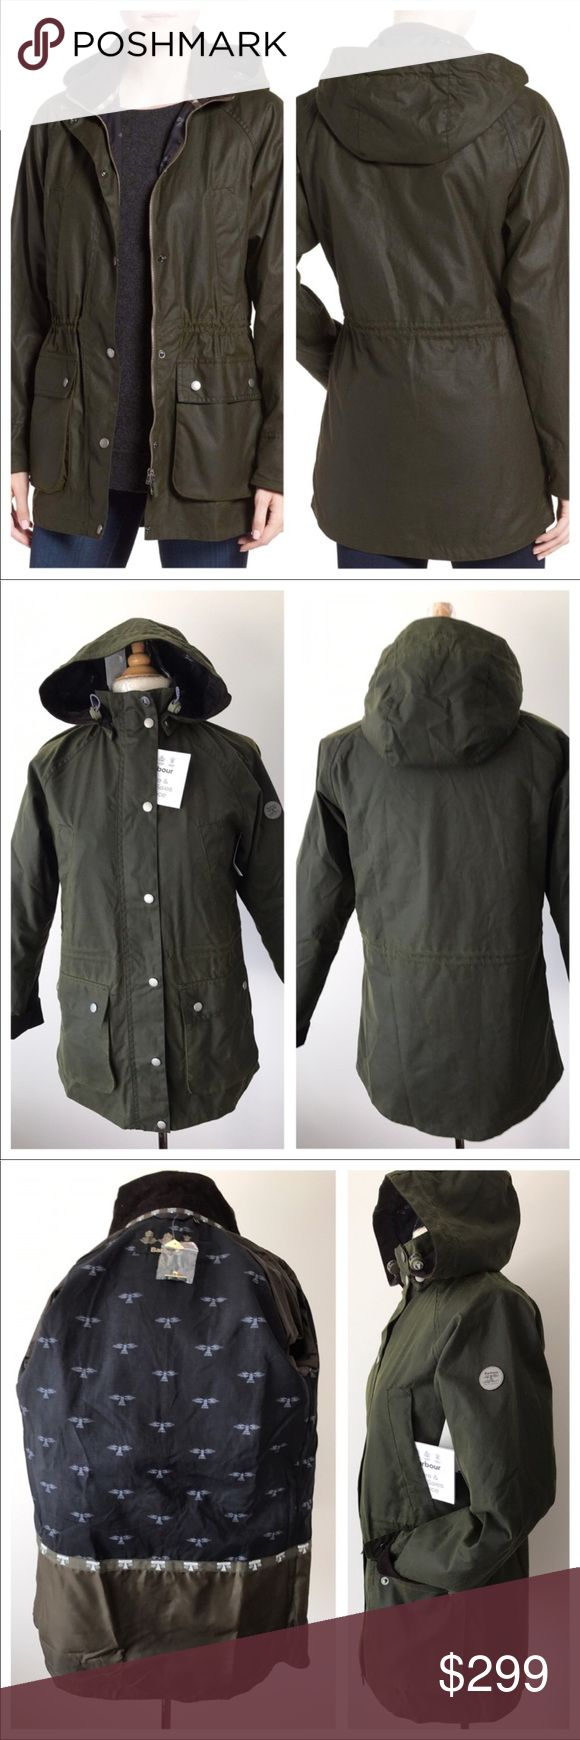 "NEW Barbour Brae Waxed Parka Coat☔️💂‍♀️☃️ A corduroy-trimmed collar and removable hood enhance the cold-weather appeal of an oversized, waxed-cotton parka. ☔️drawstring waist and signature Beacon-print cotton lining help keep wind and rain out, and raglan sleeves and a lower back hem complete the sporty look 30 1/2"" length (size US4 Two-way front-zip closure with snap placket snap-flap pockets Removable hood Interior drawstring at waist 100% waxed cotton Brand new store without tags  Has…"